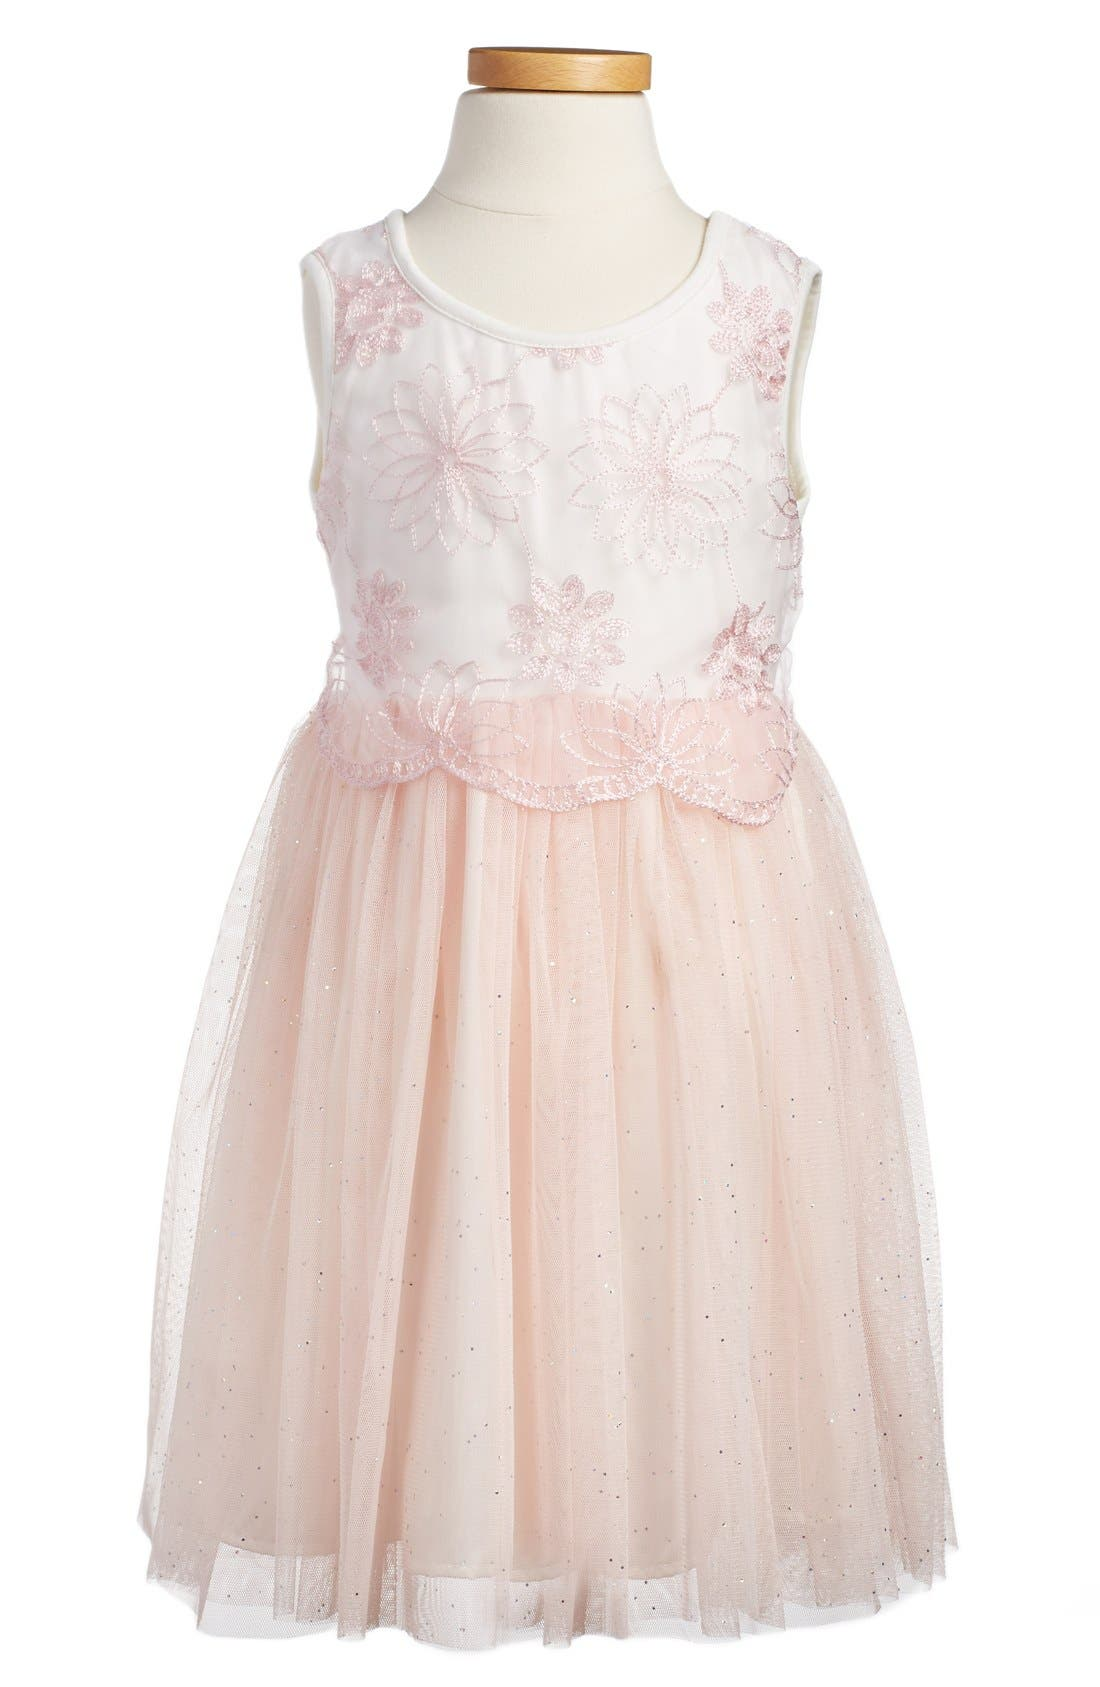 Popatu Embroidered Tulle Dress (Toddler Girls, Little Girls & Big Girls)